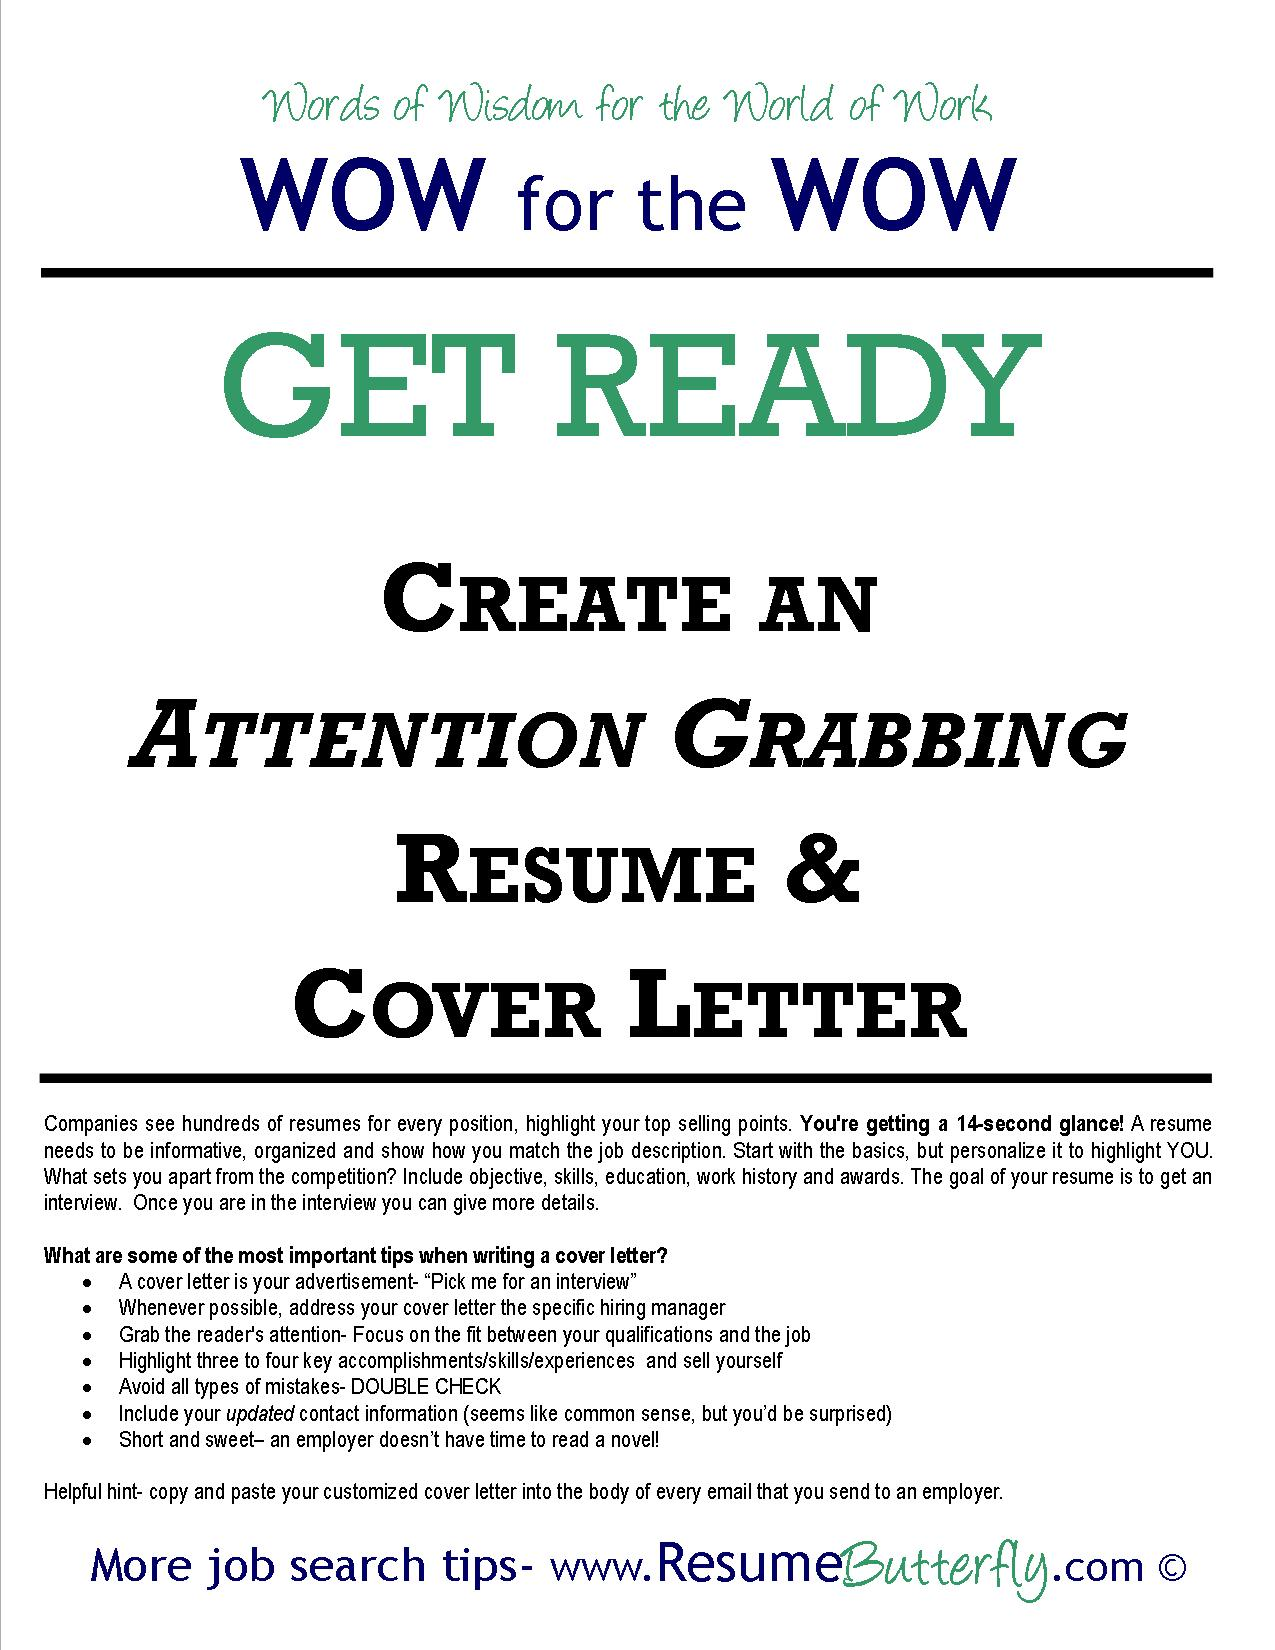 attention grabbing cover letter samples